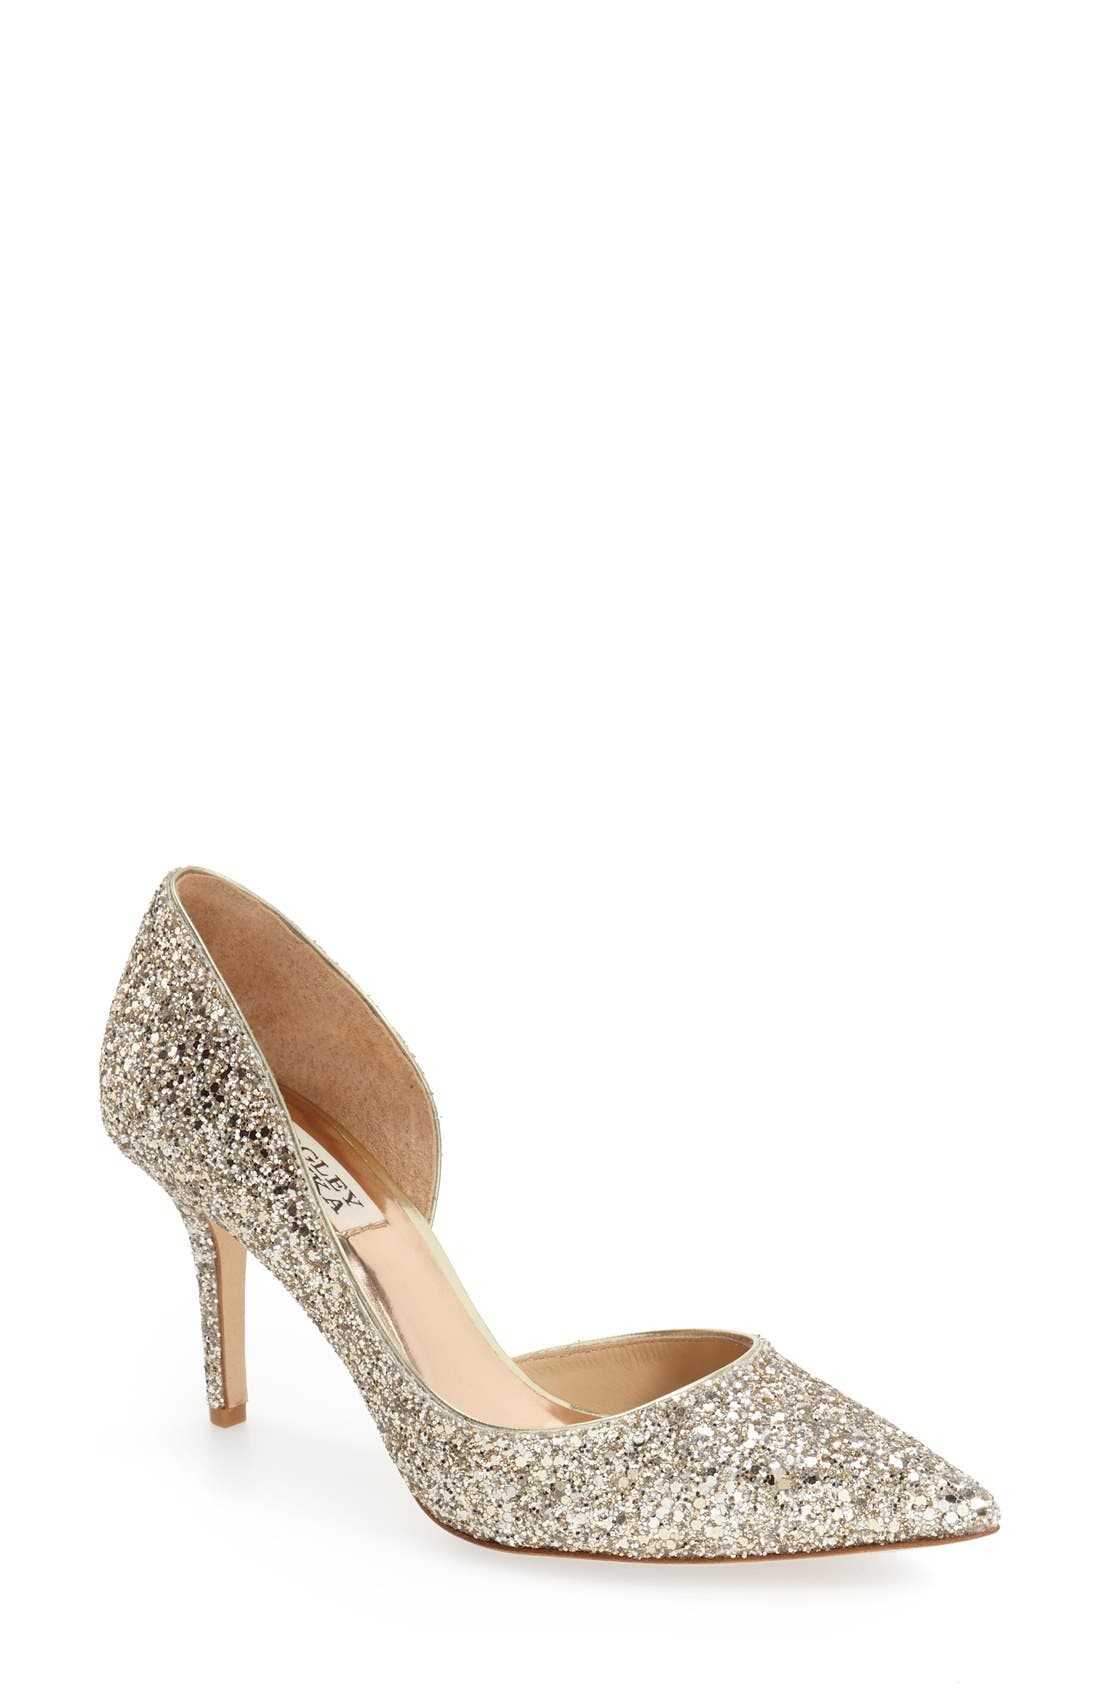 'Daisy' Embellished Pointy Toe Pump,                         Main,                         color, PLATINO GLITTER FABRIC